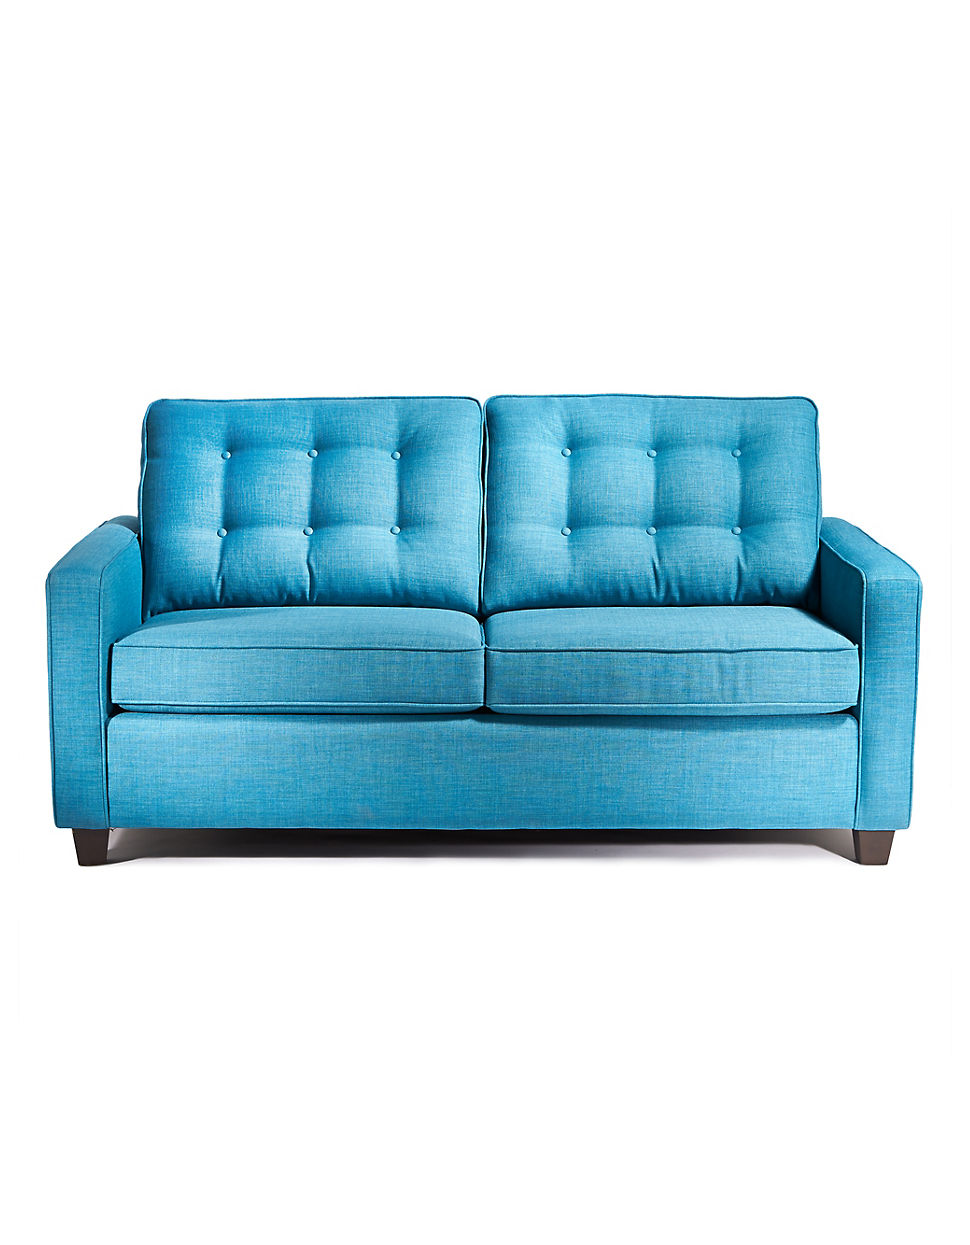 Simmons Sofa Bed The Bay